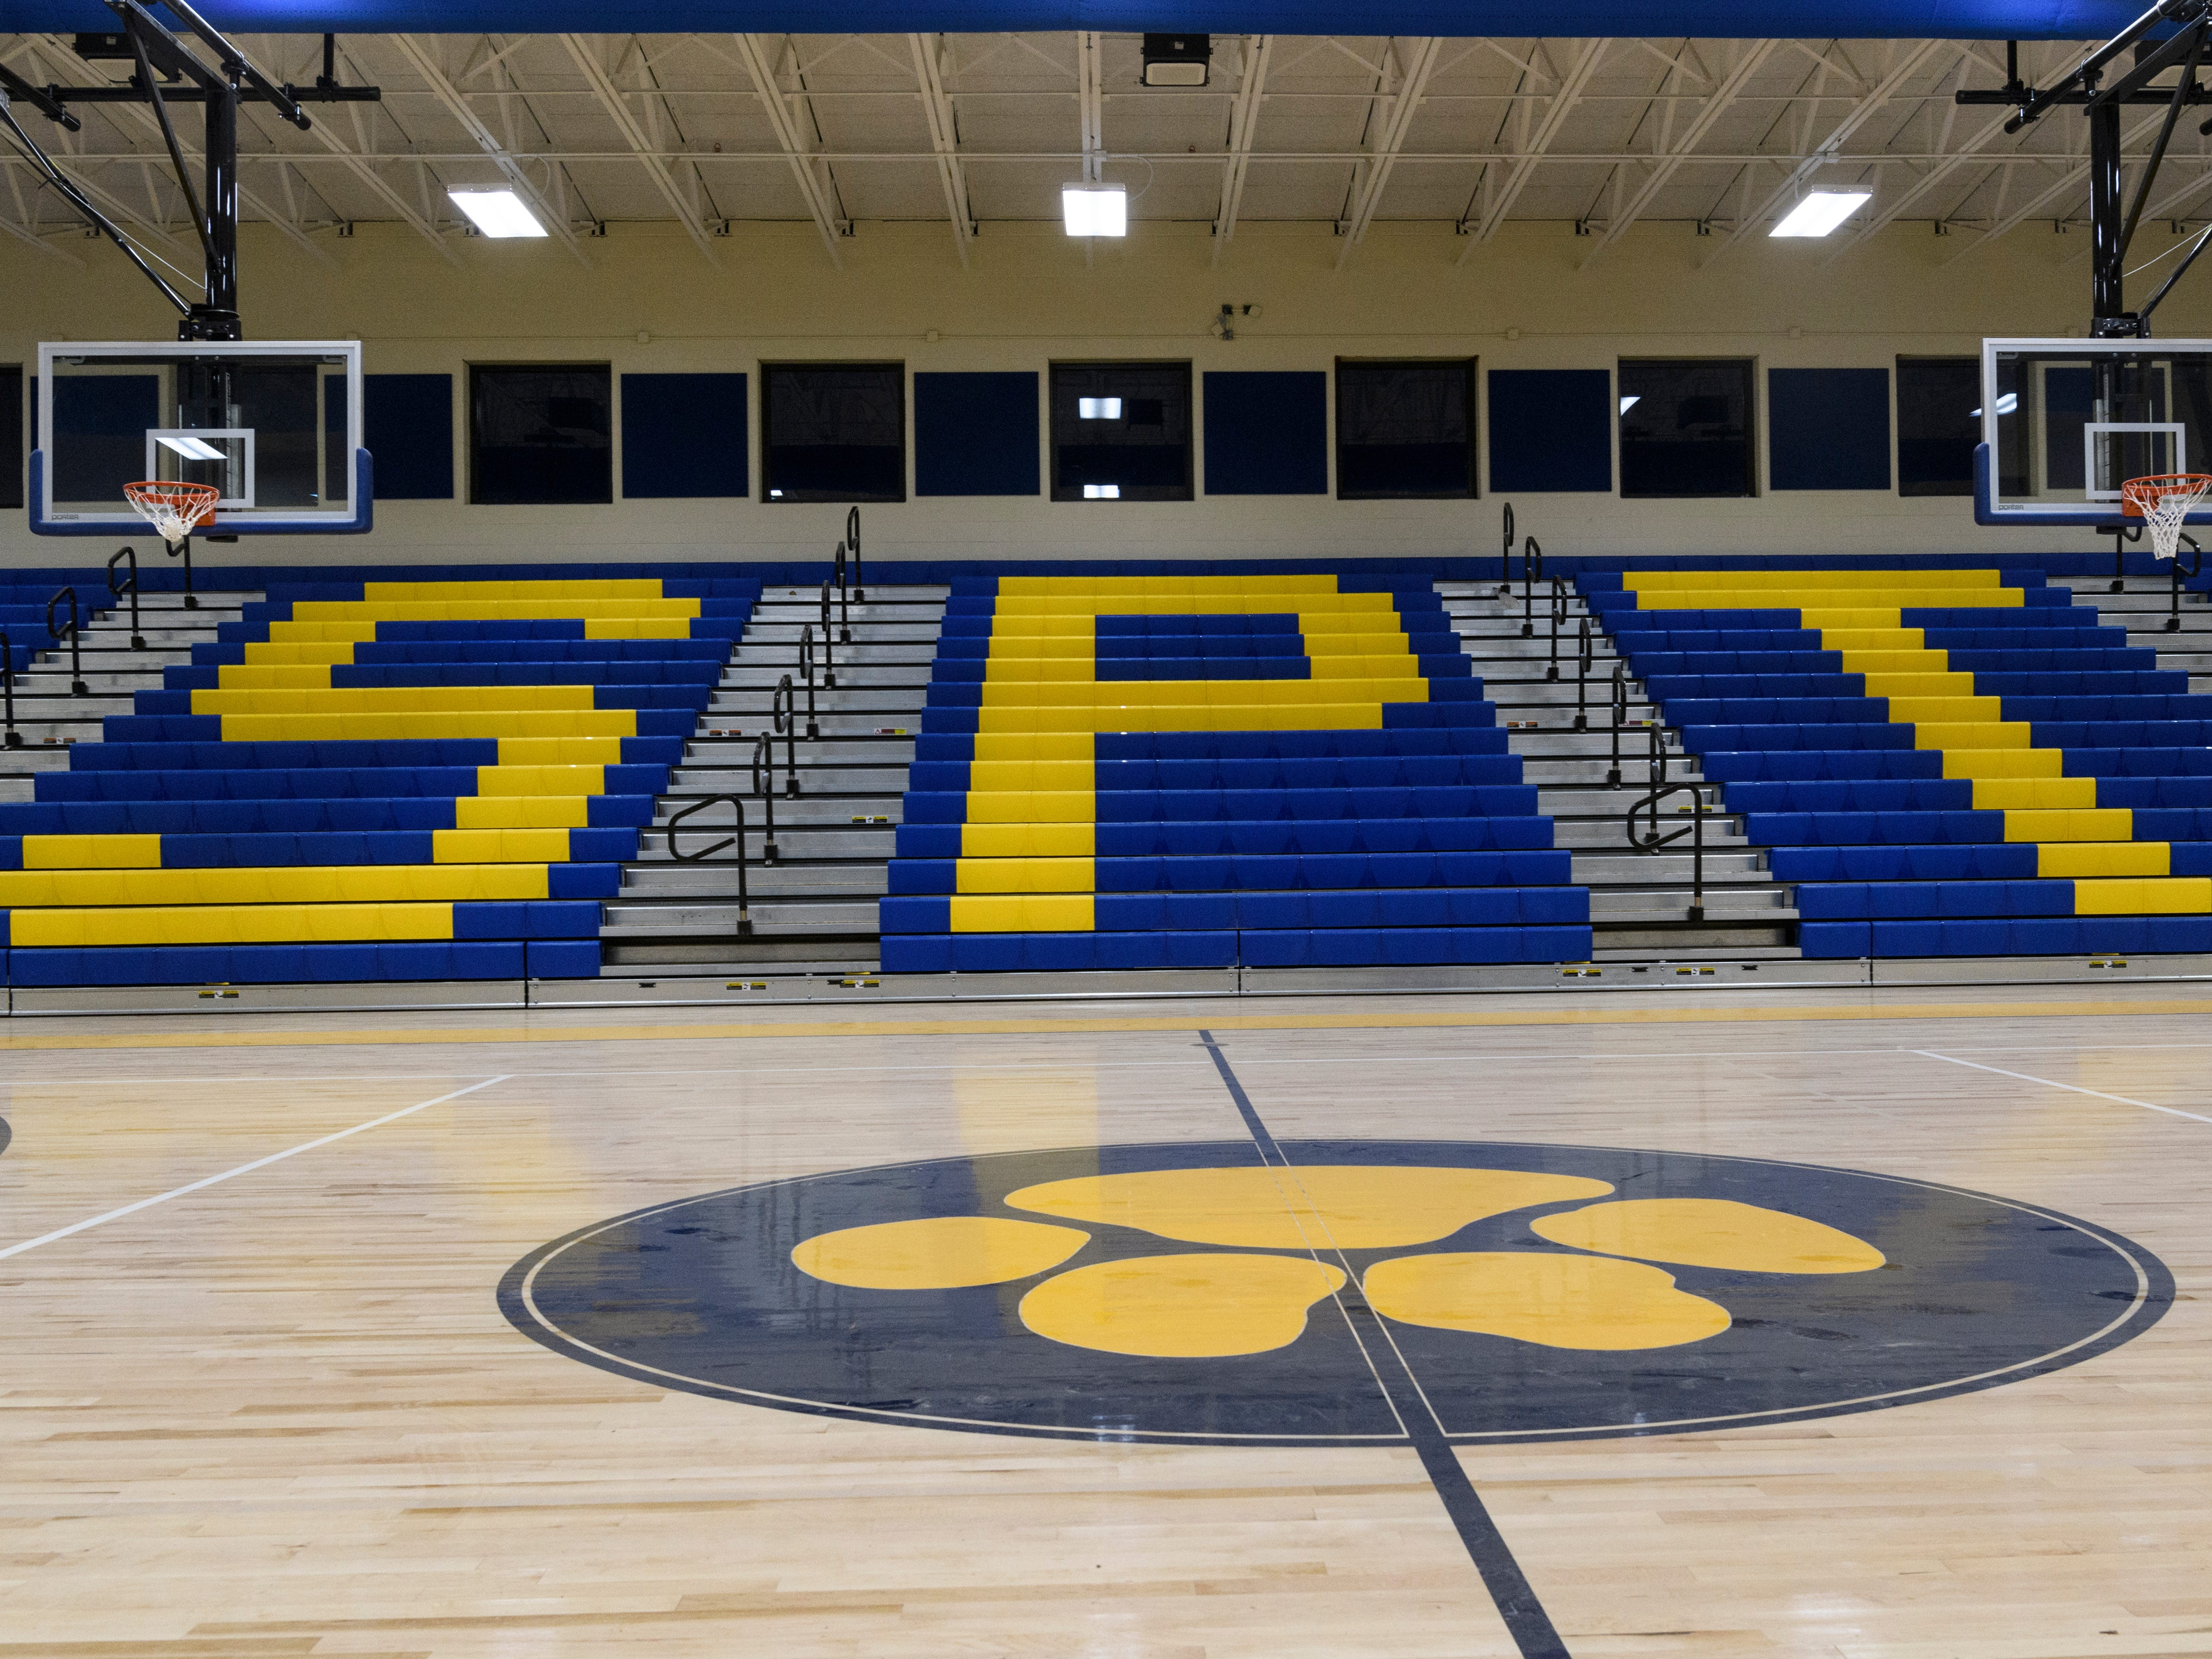 The gymnasium inside the new Spottsville Elementary School building in Henderson County features stadium seating and a stage, not pictured. The school was built to accommodate 700 students with 30 classrooms, an art and music room, two computer labs, four resource rooms and a modern media center.